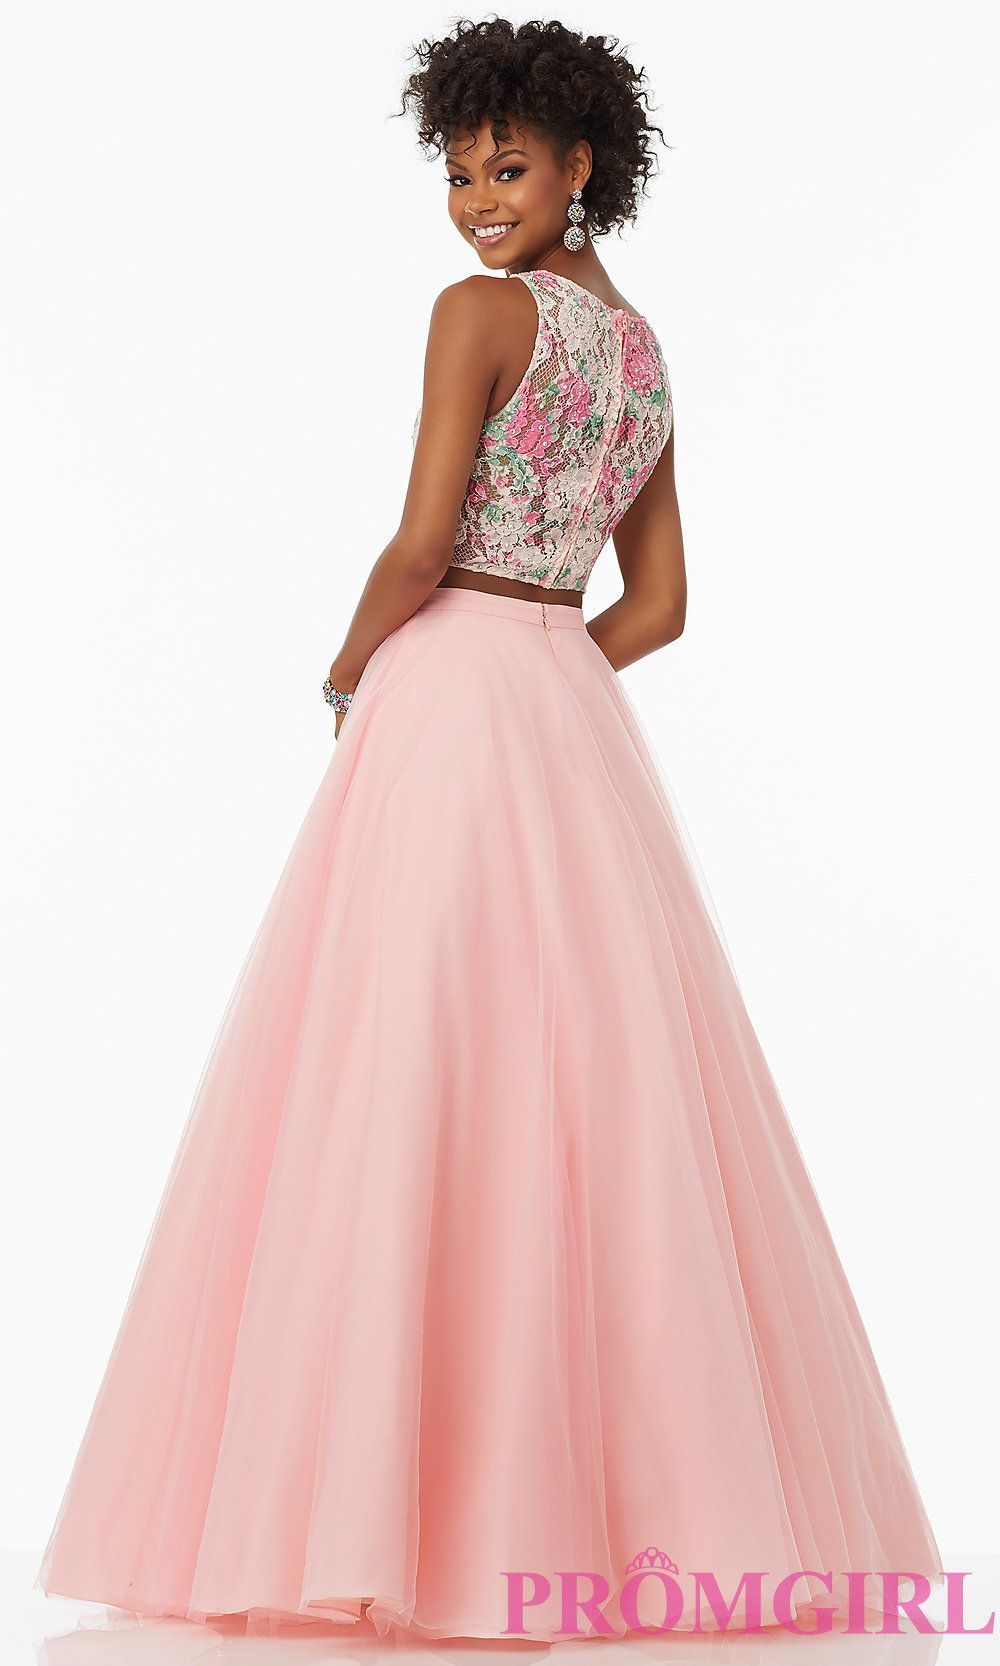 Ball Gown Style Pink Two Piece Prom Dress | Dresses | Pinterest ...